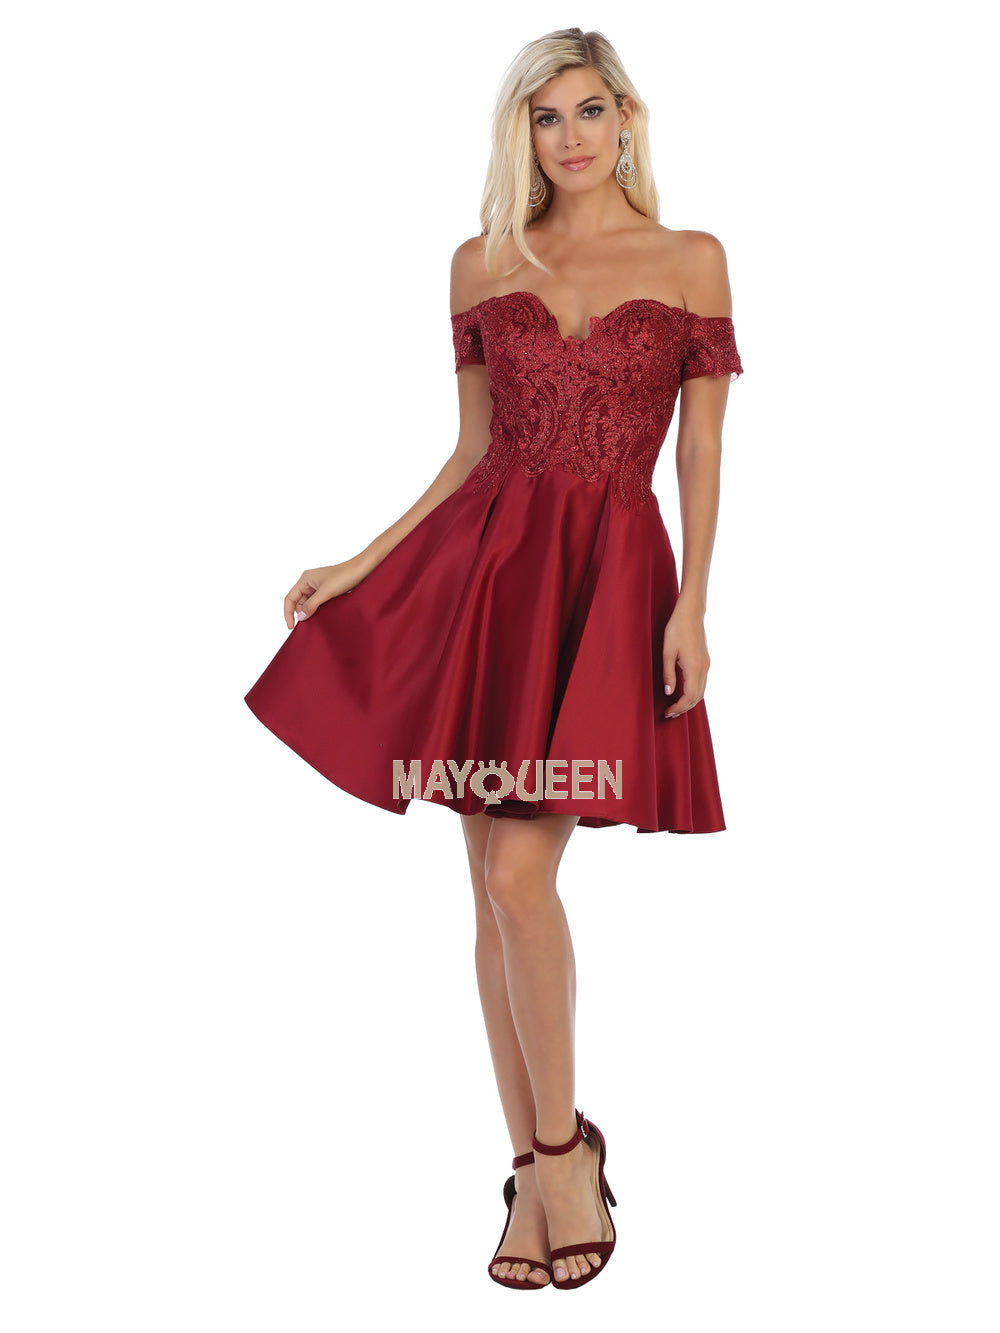 Mayqueen Size Chart E MQ 1634 - Off the Shoulder Embellished Bodice Satin Homecoming Dress with Pockets - Diggz Prom